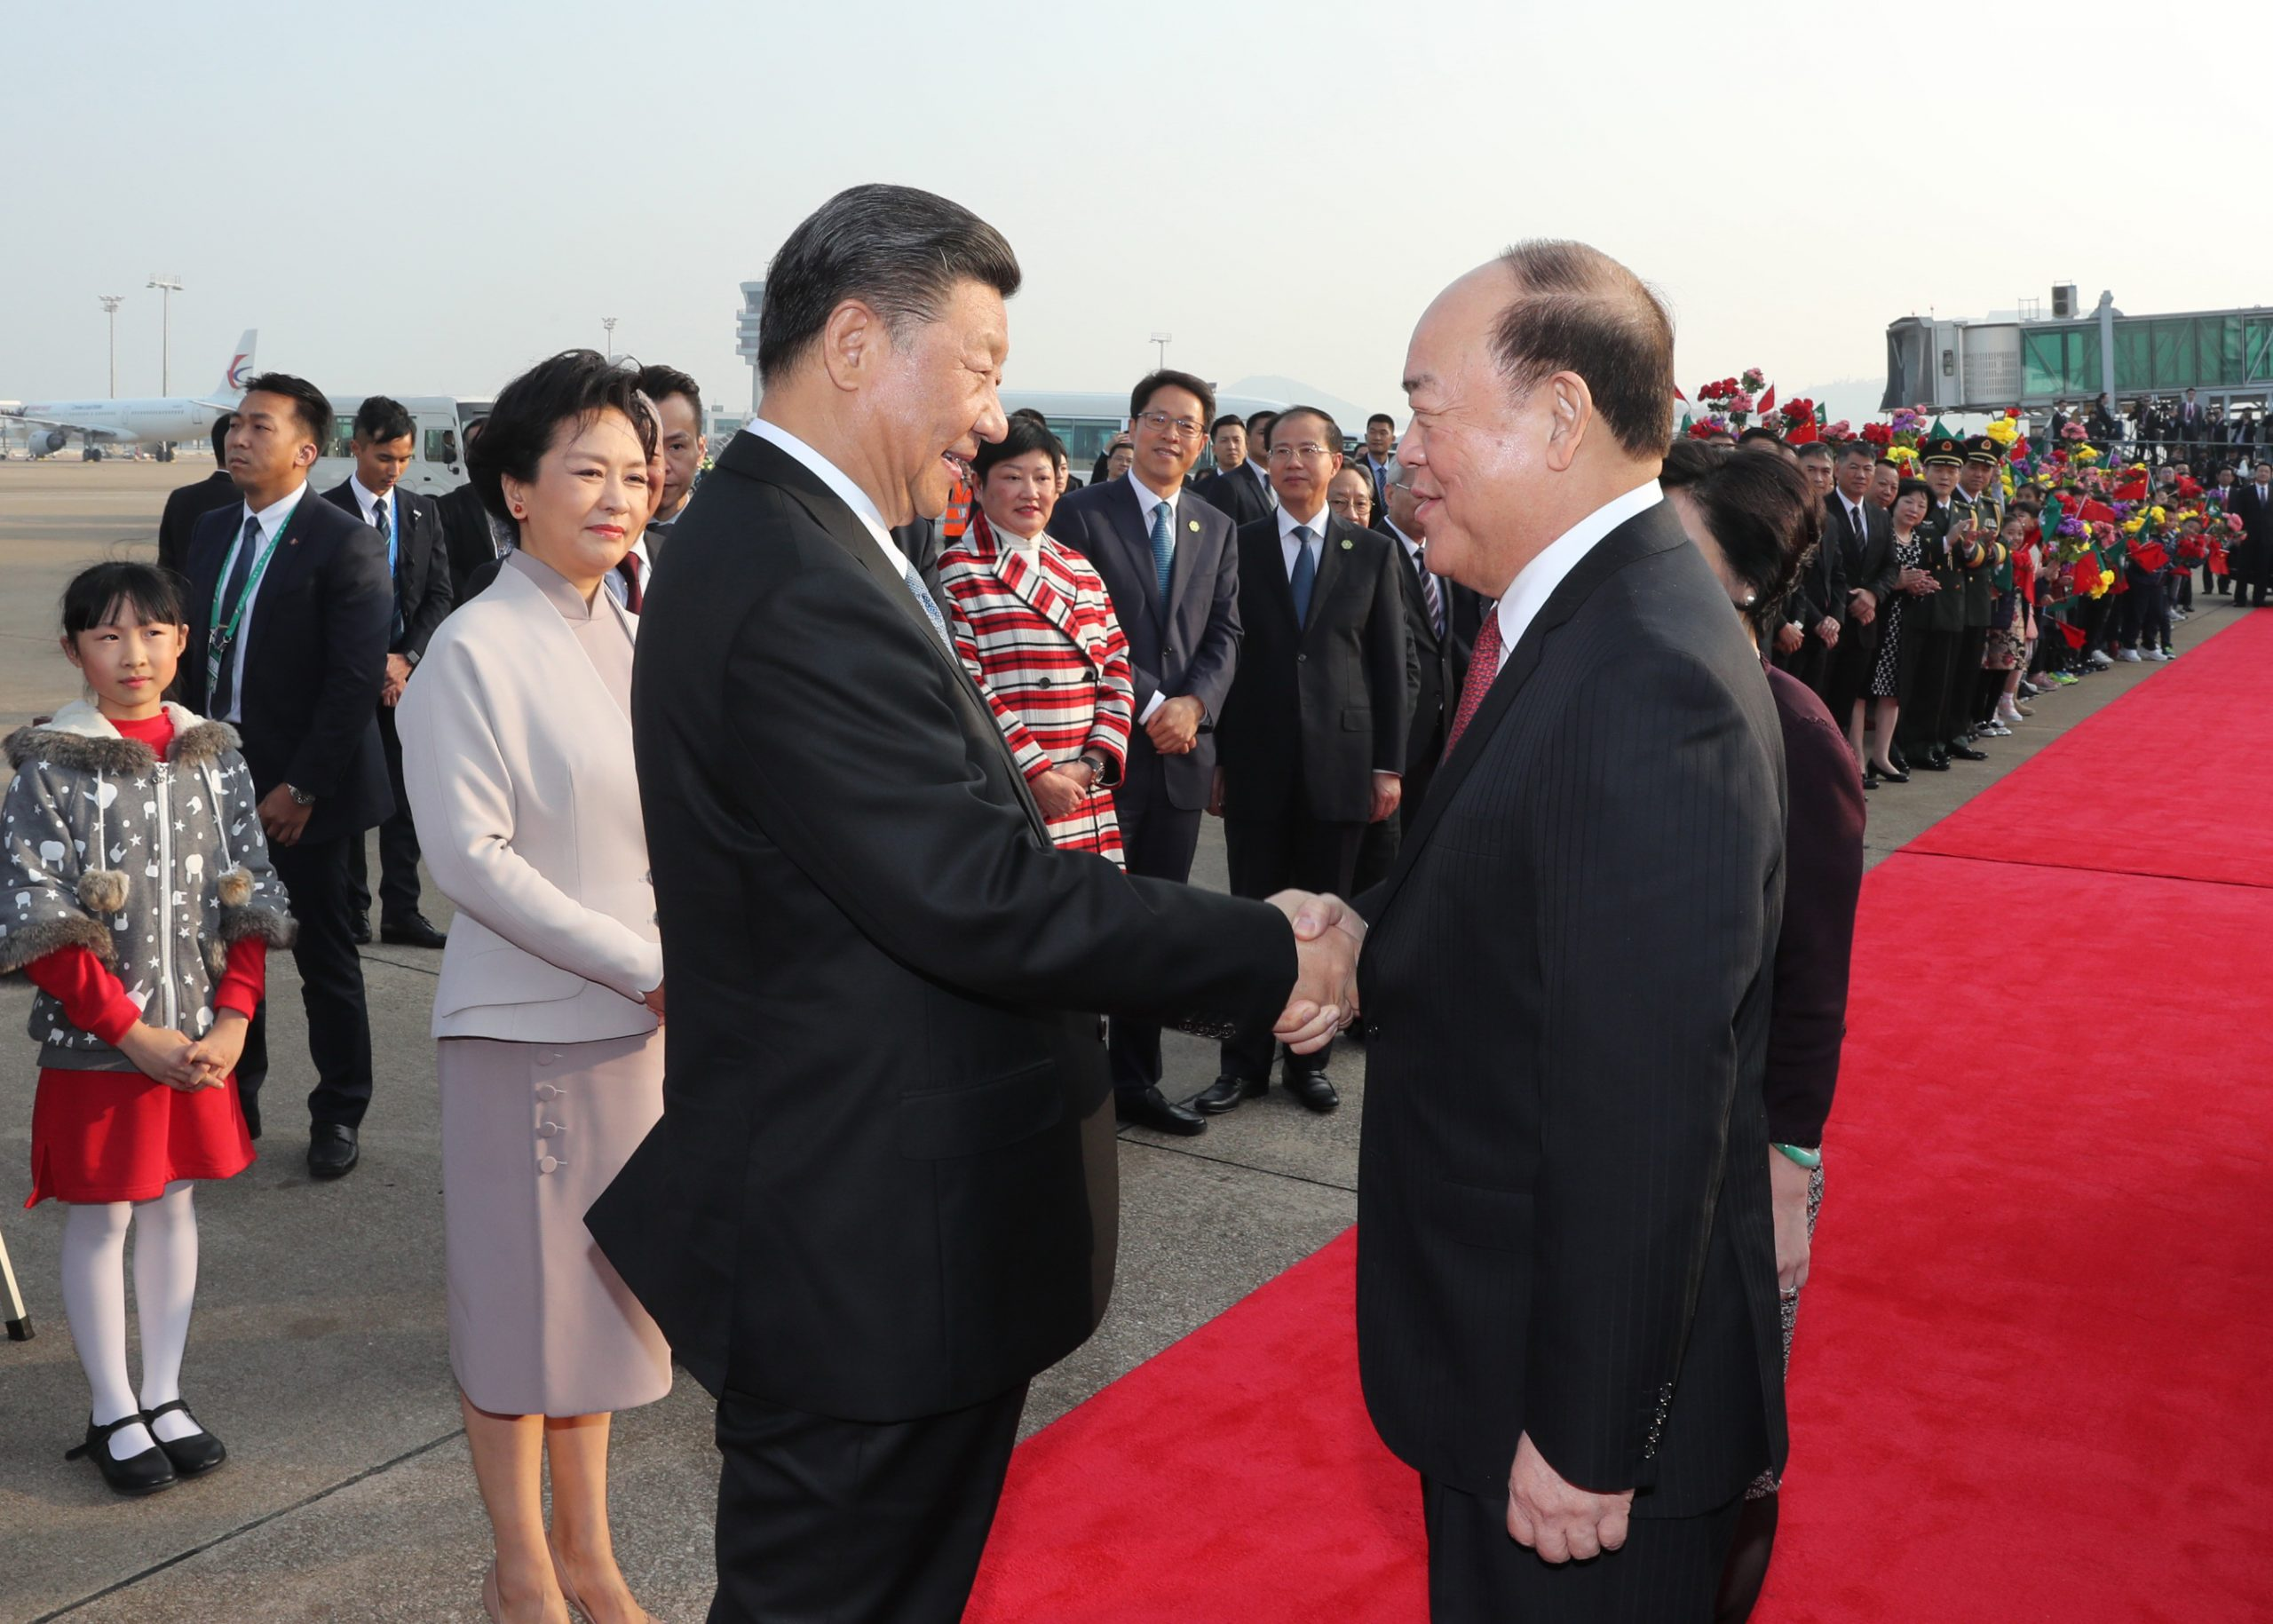 CHINA-MACAO-XI JINPING-SEEING-OFF CEREMONY(CN)